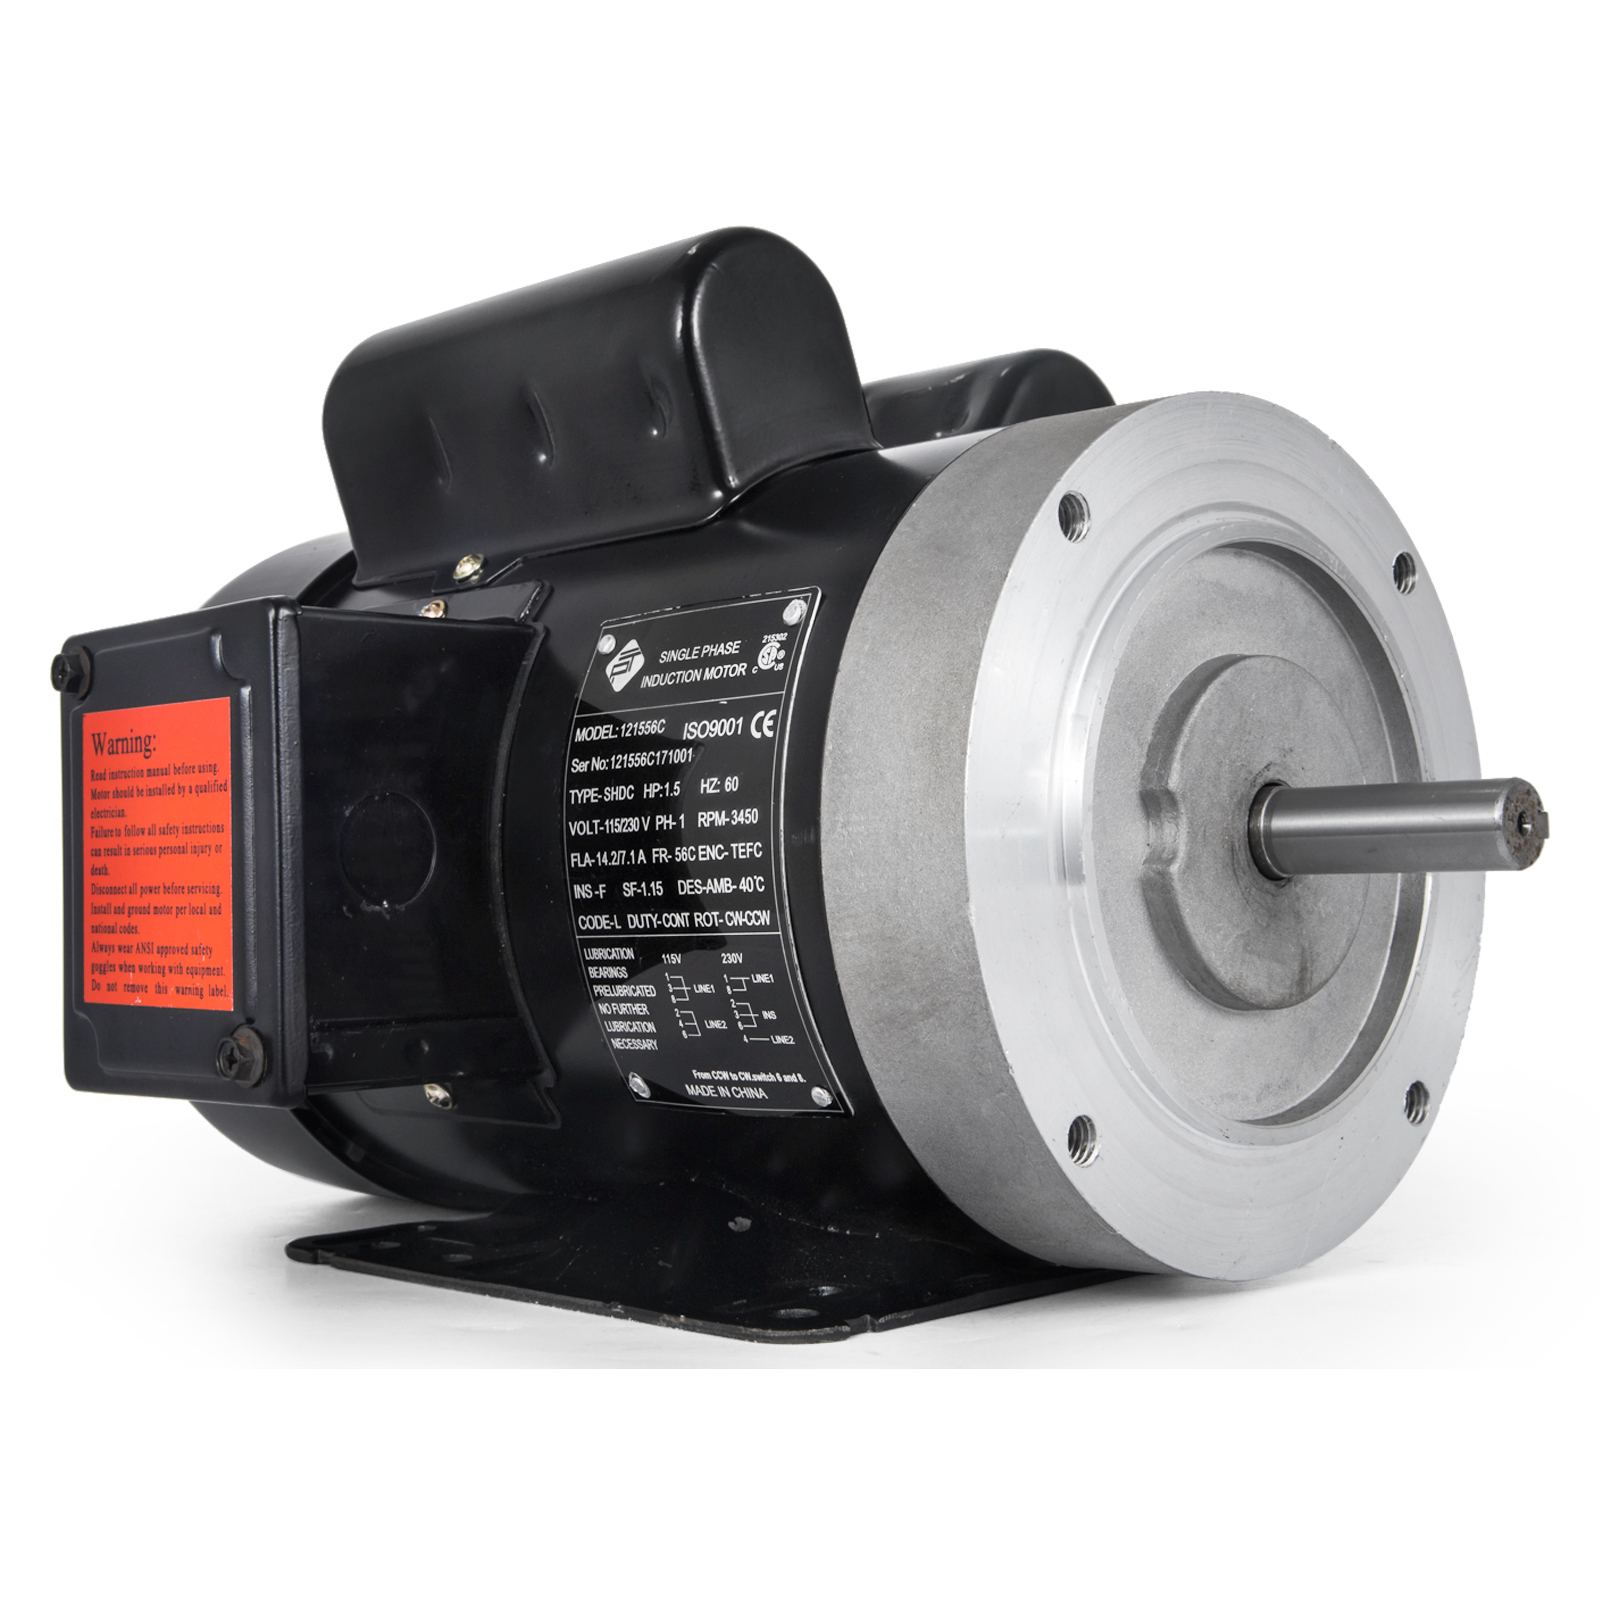 Details about Electric Motor 1 5HP 56C 1 phase TEFC 115/230V 3600RPM  121556C 60Hz Keyed shaft